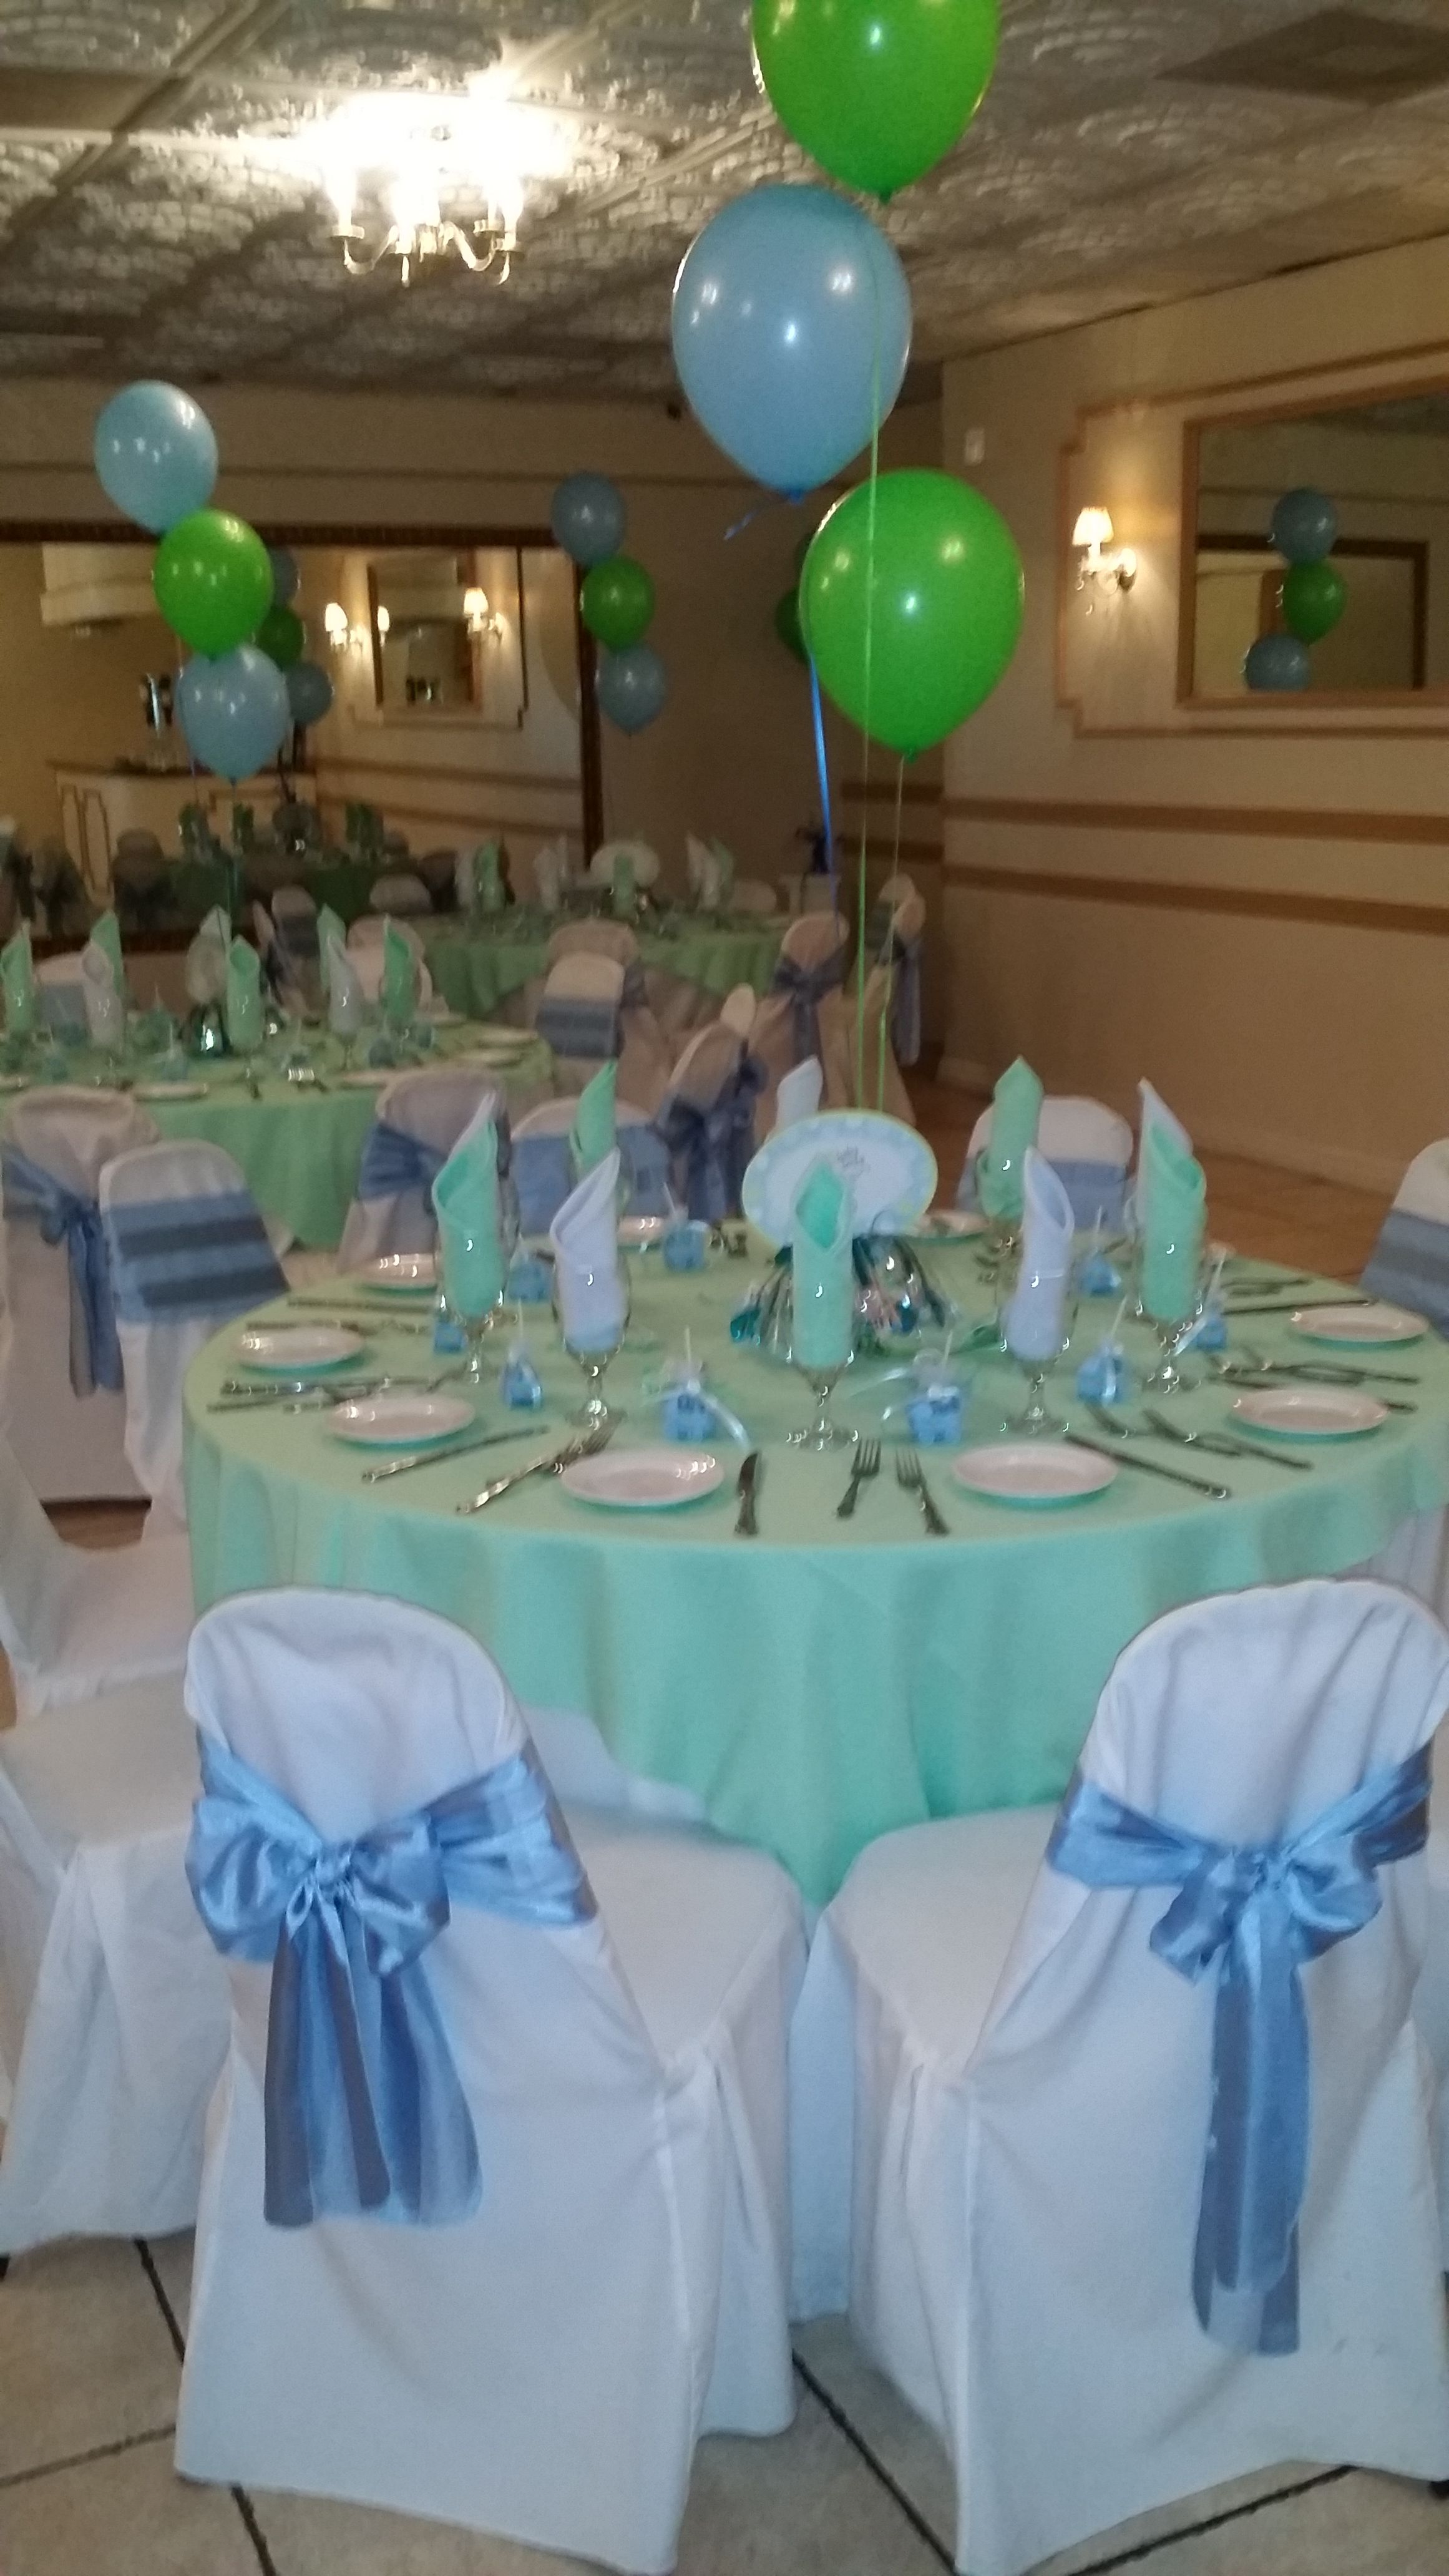 Superior Baby Showers At Gables Banquet Hall Will Be The New Beginning Of Memories